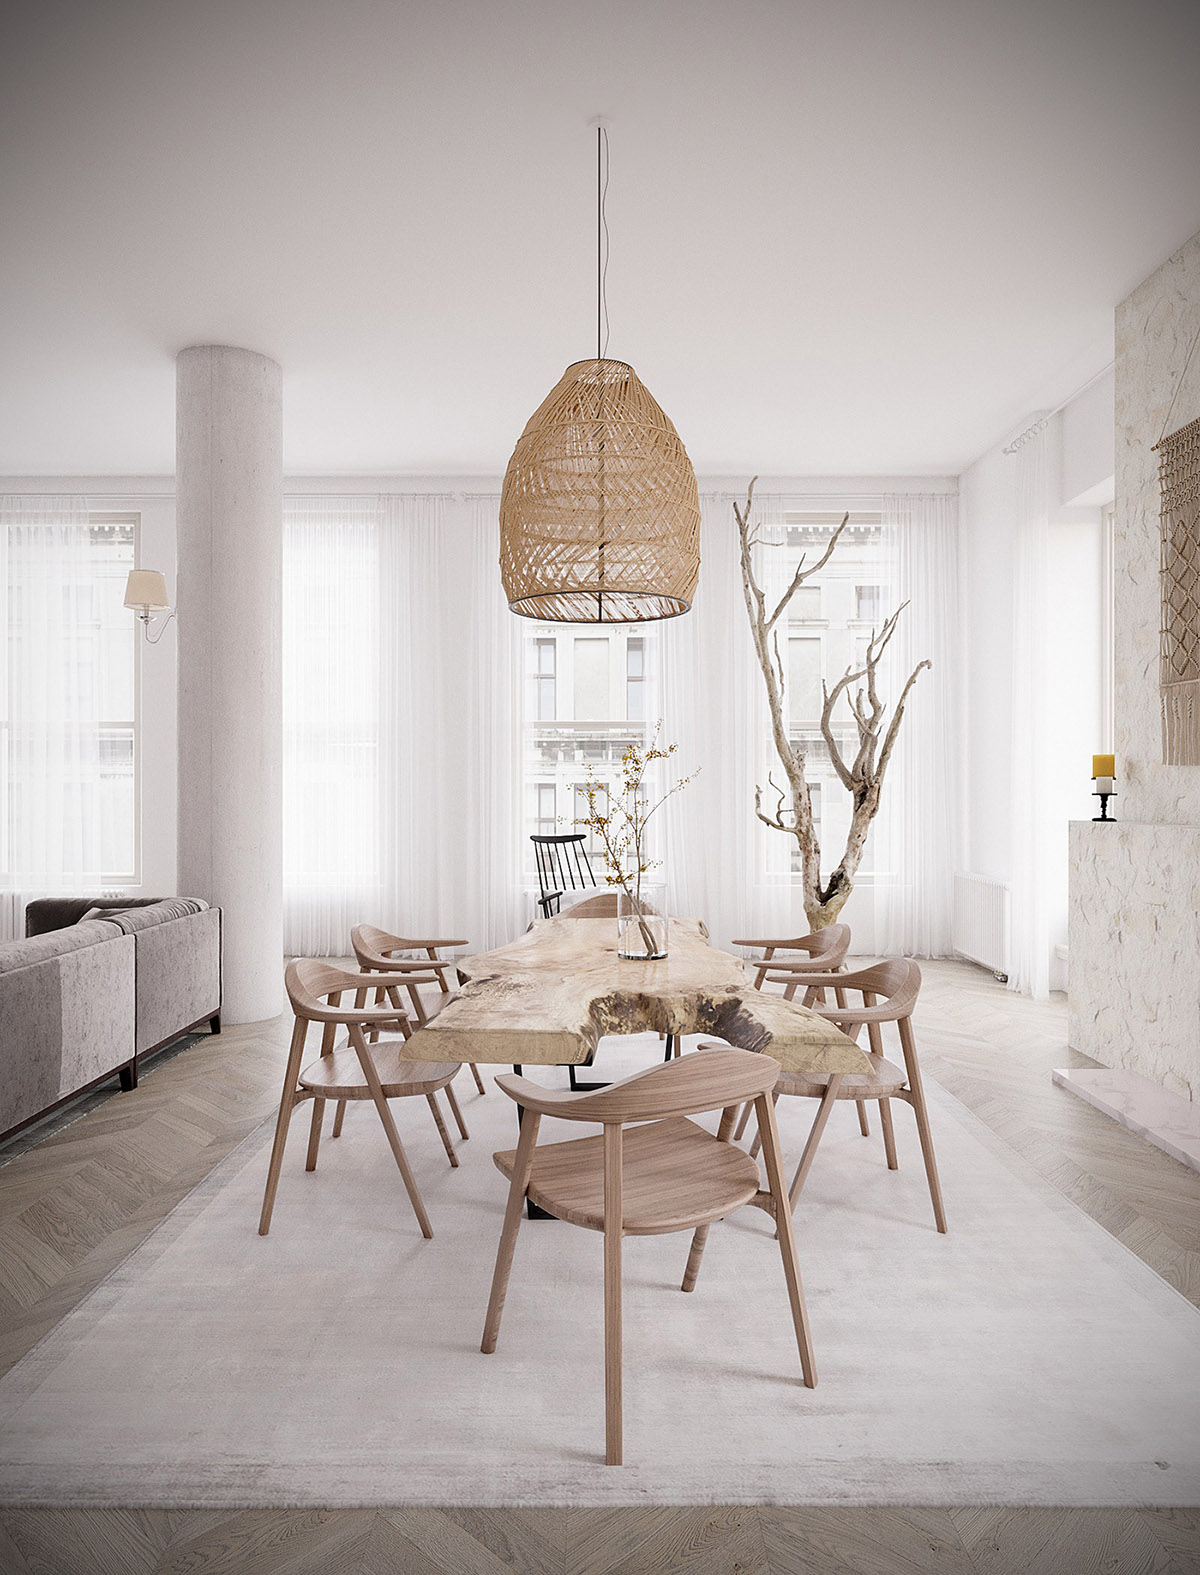 2 Rustic Interiors With A Cool Nomadic Style